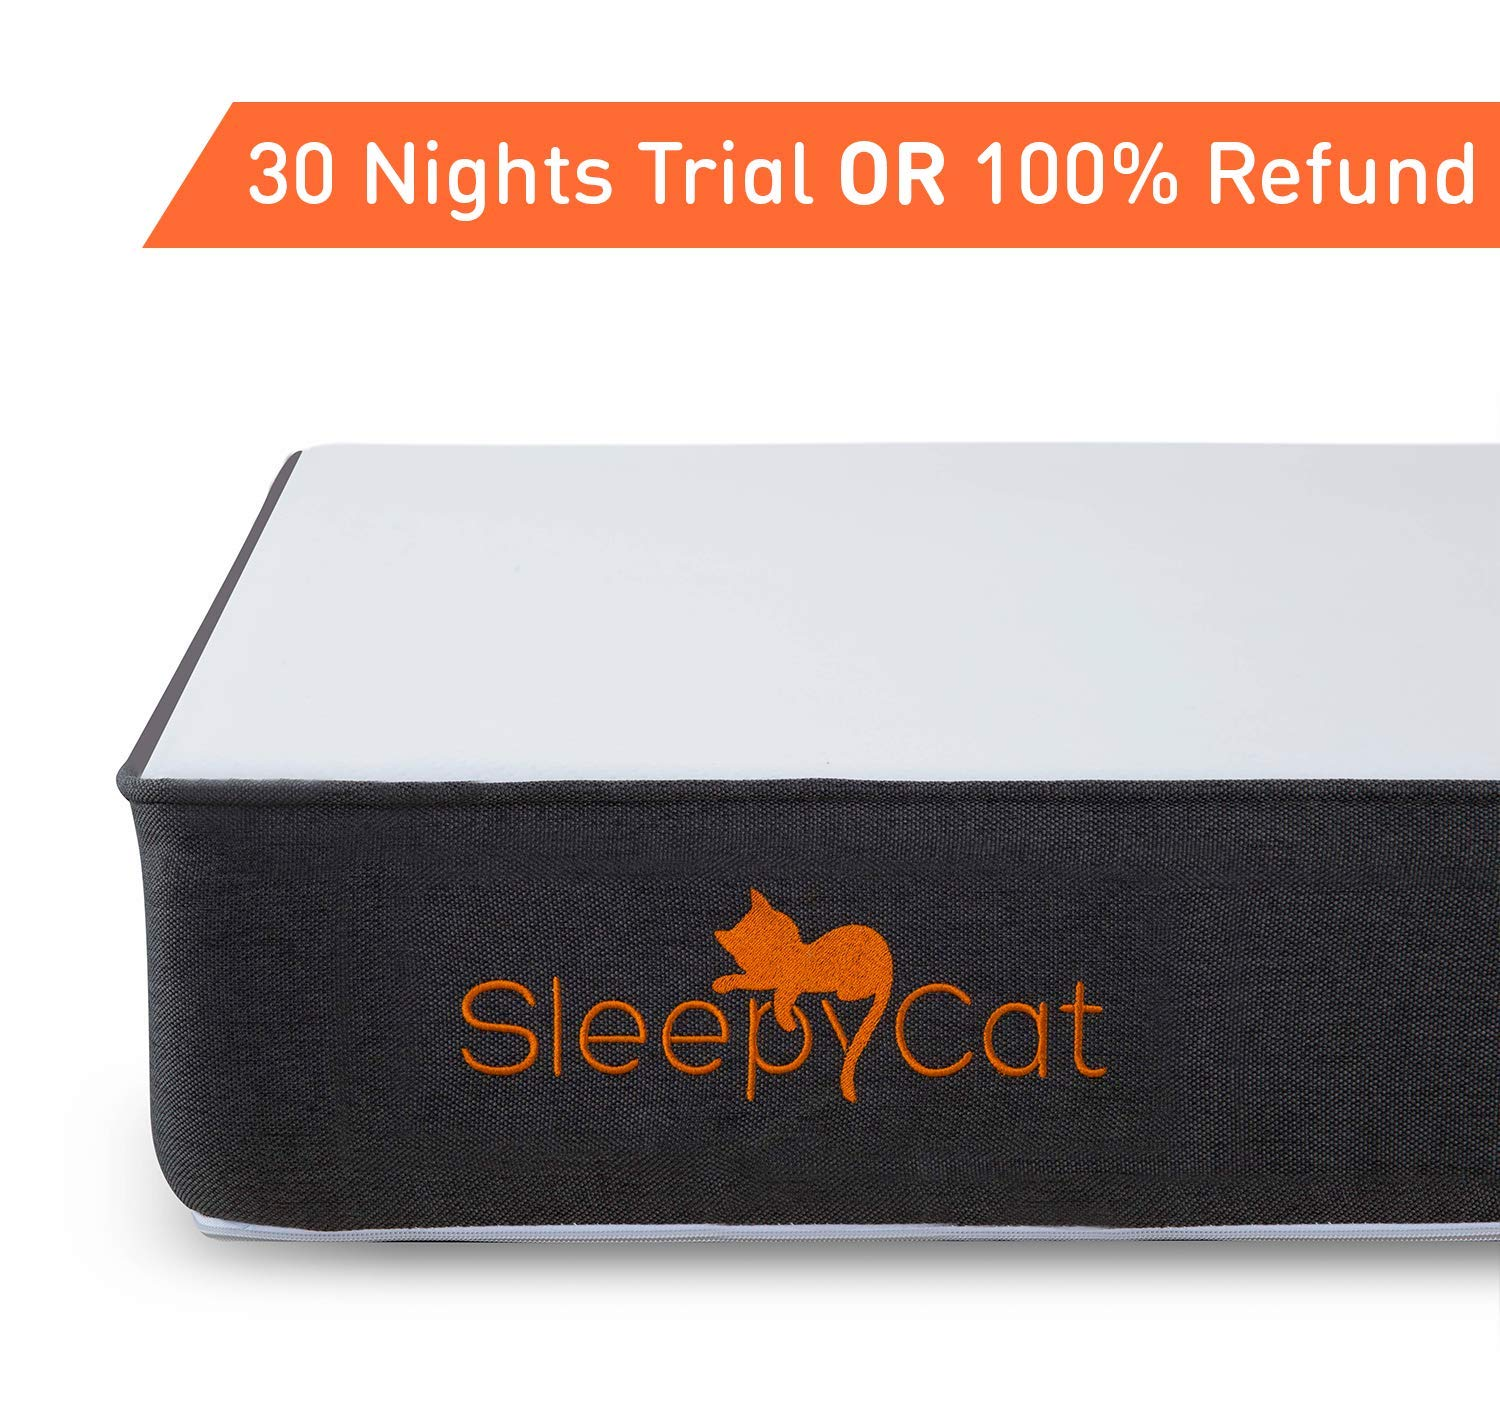 SleepyCat - Orthopedic Gel Memory Foam Mattress (78x36x6 inches)